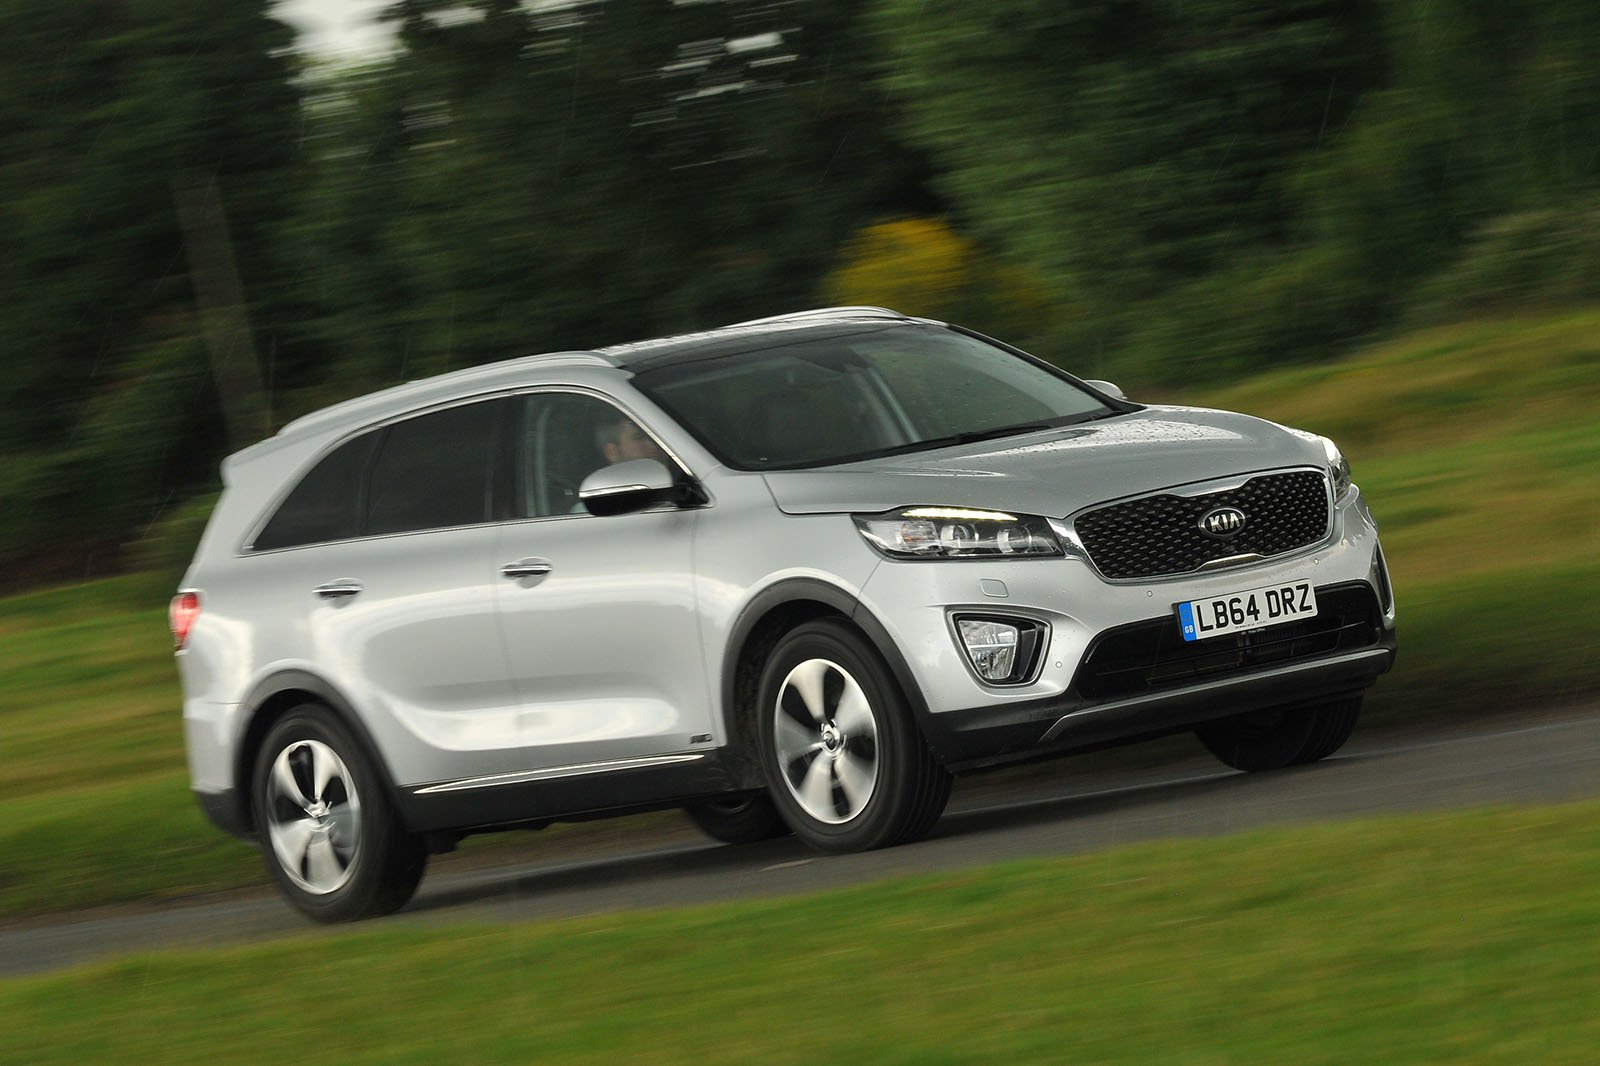 Used test: Ford Edge vs Kia Sorento